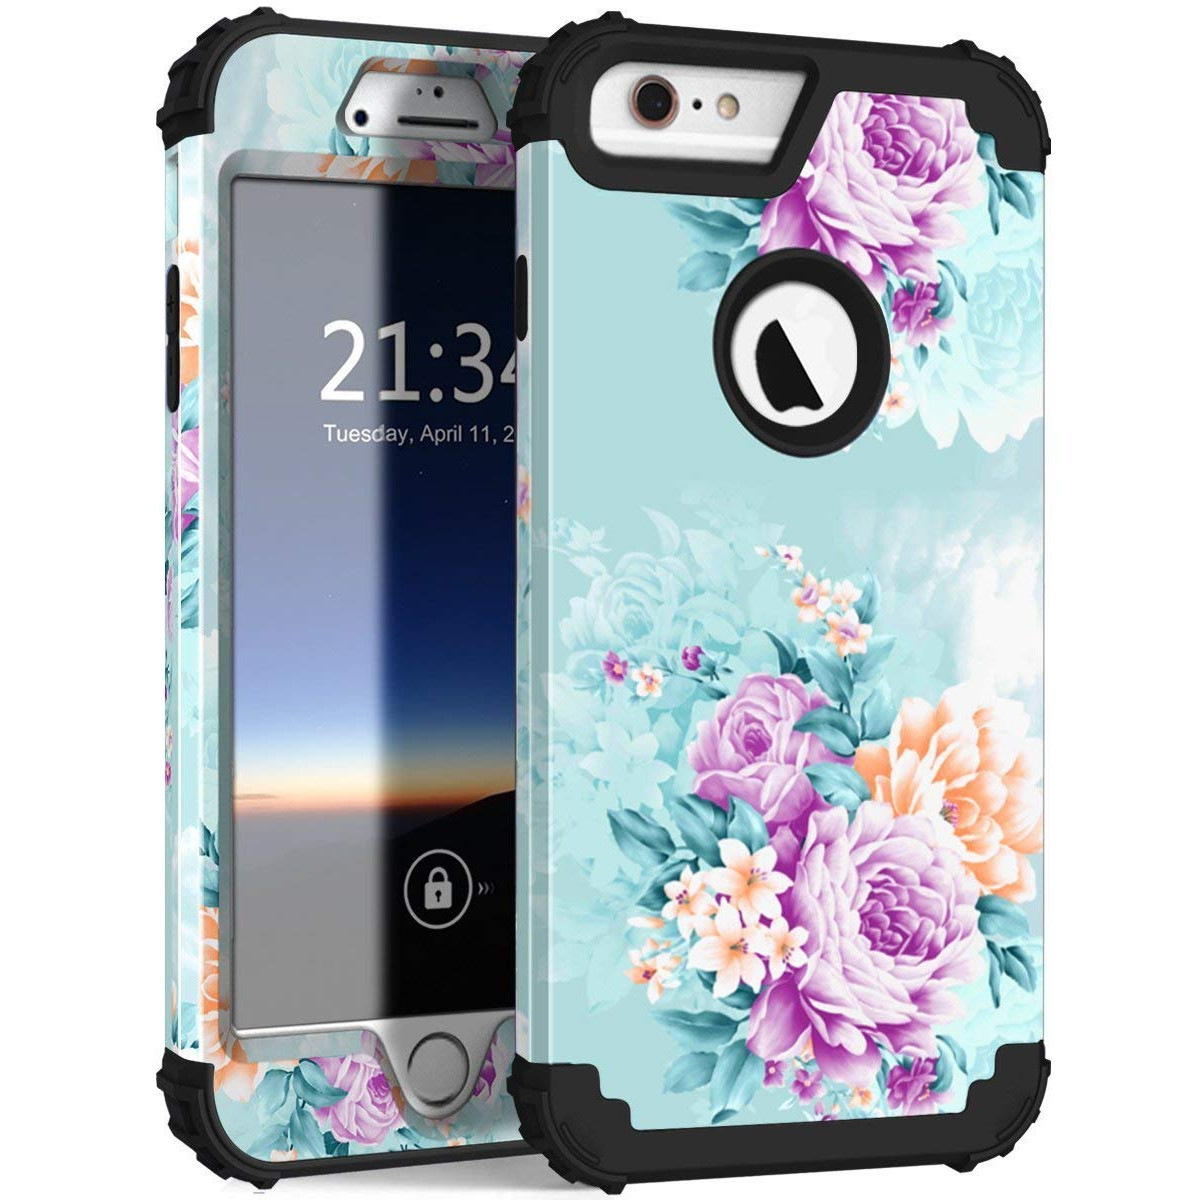 Iphone 6 Plus Case Iphone 6s Plus Case Pixiu Unique Three Layer